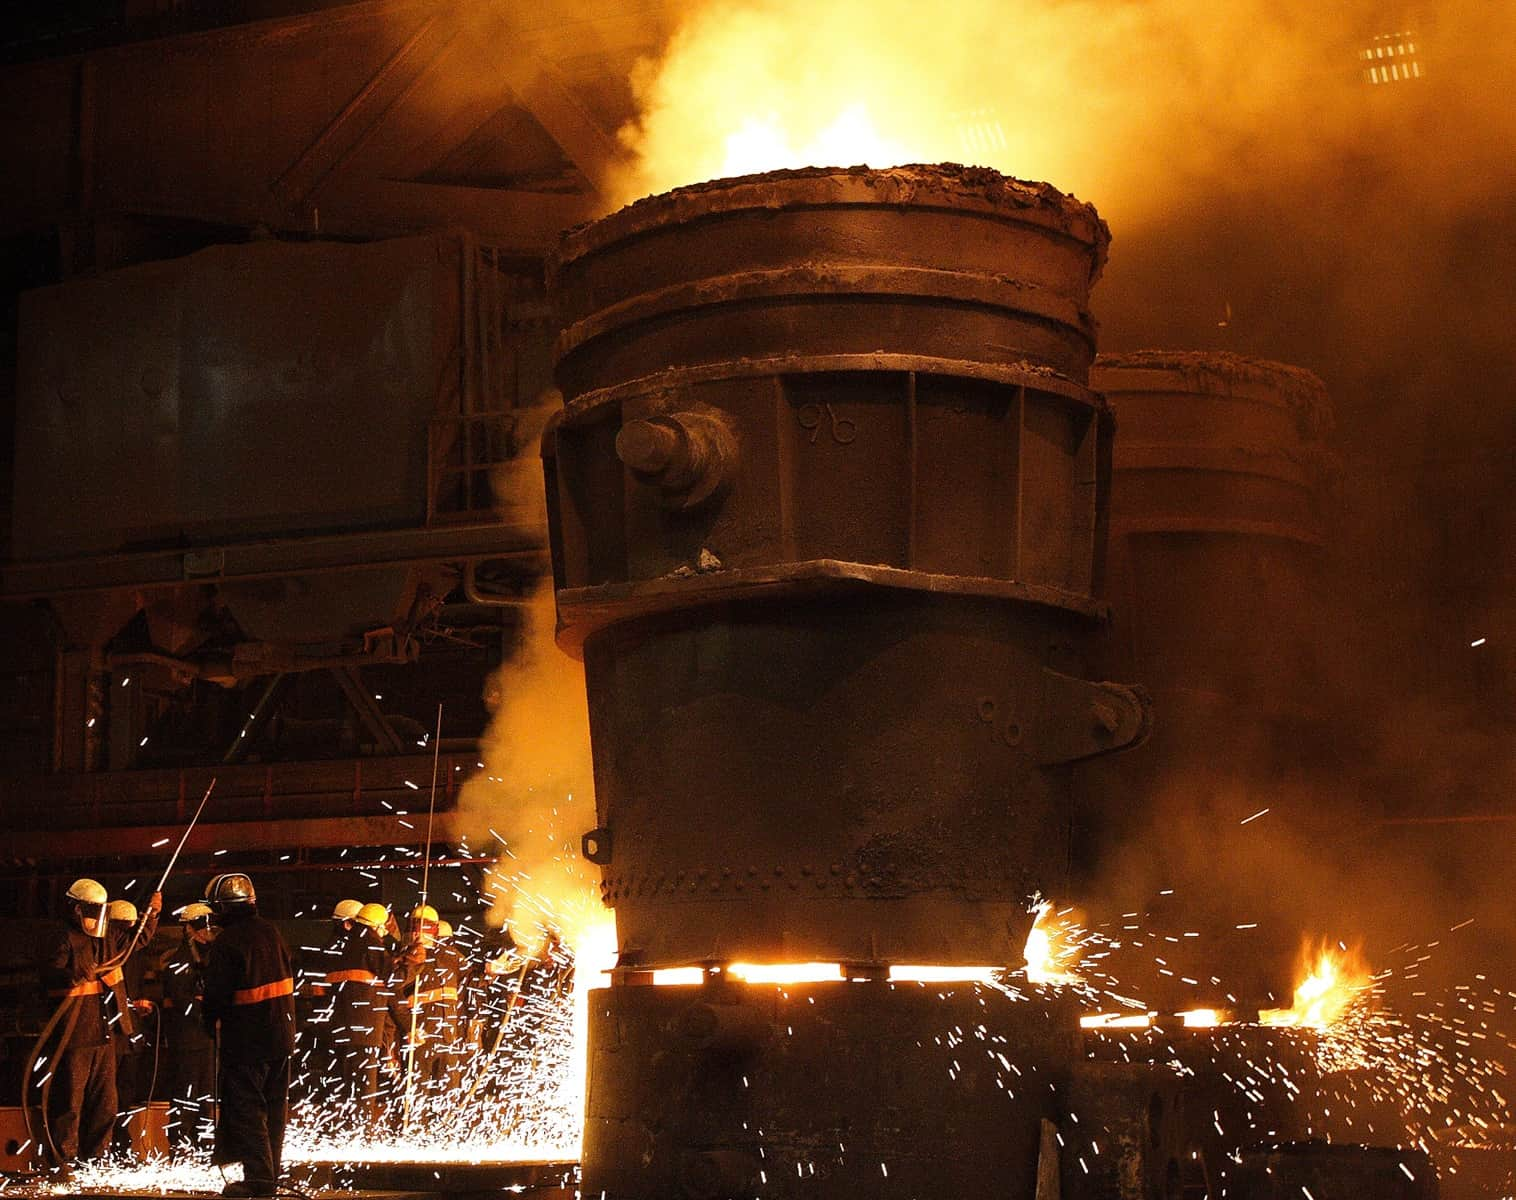 Large casting pour scheduled for Sheffield Forgemasters' foundry